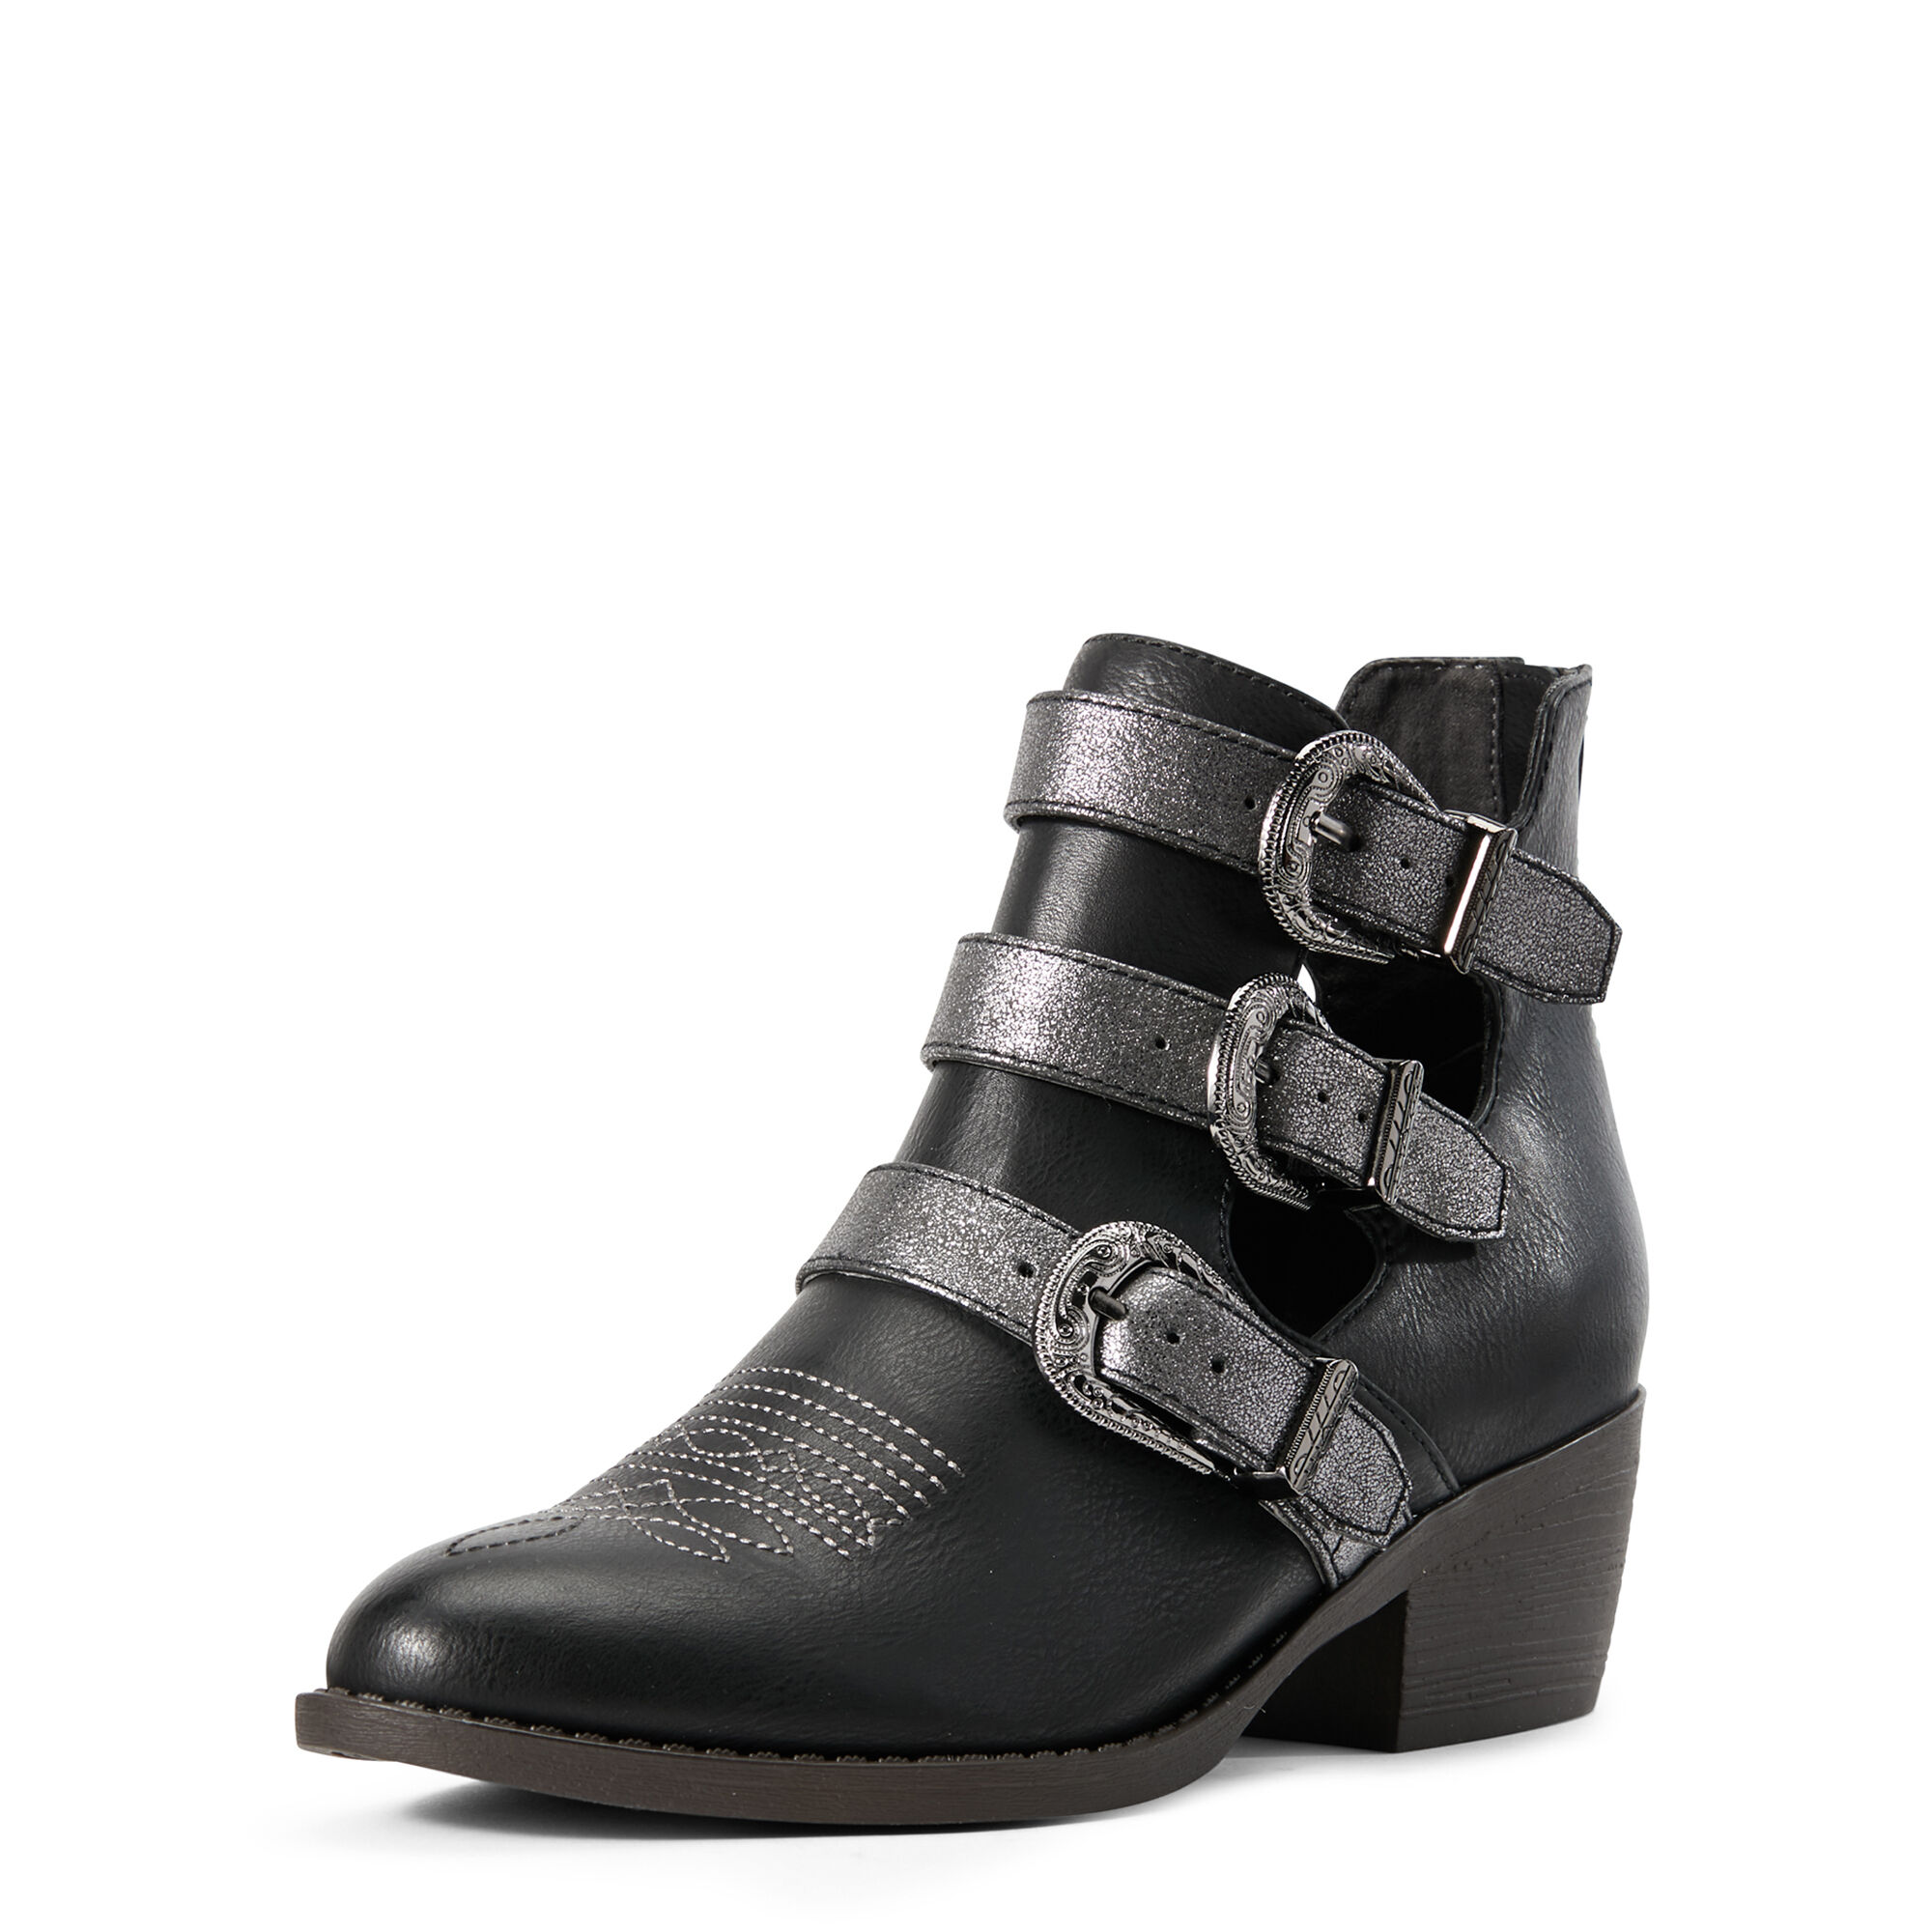 Ariat Unbridled Melody Boots in Black